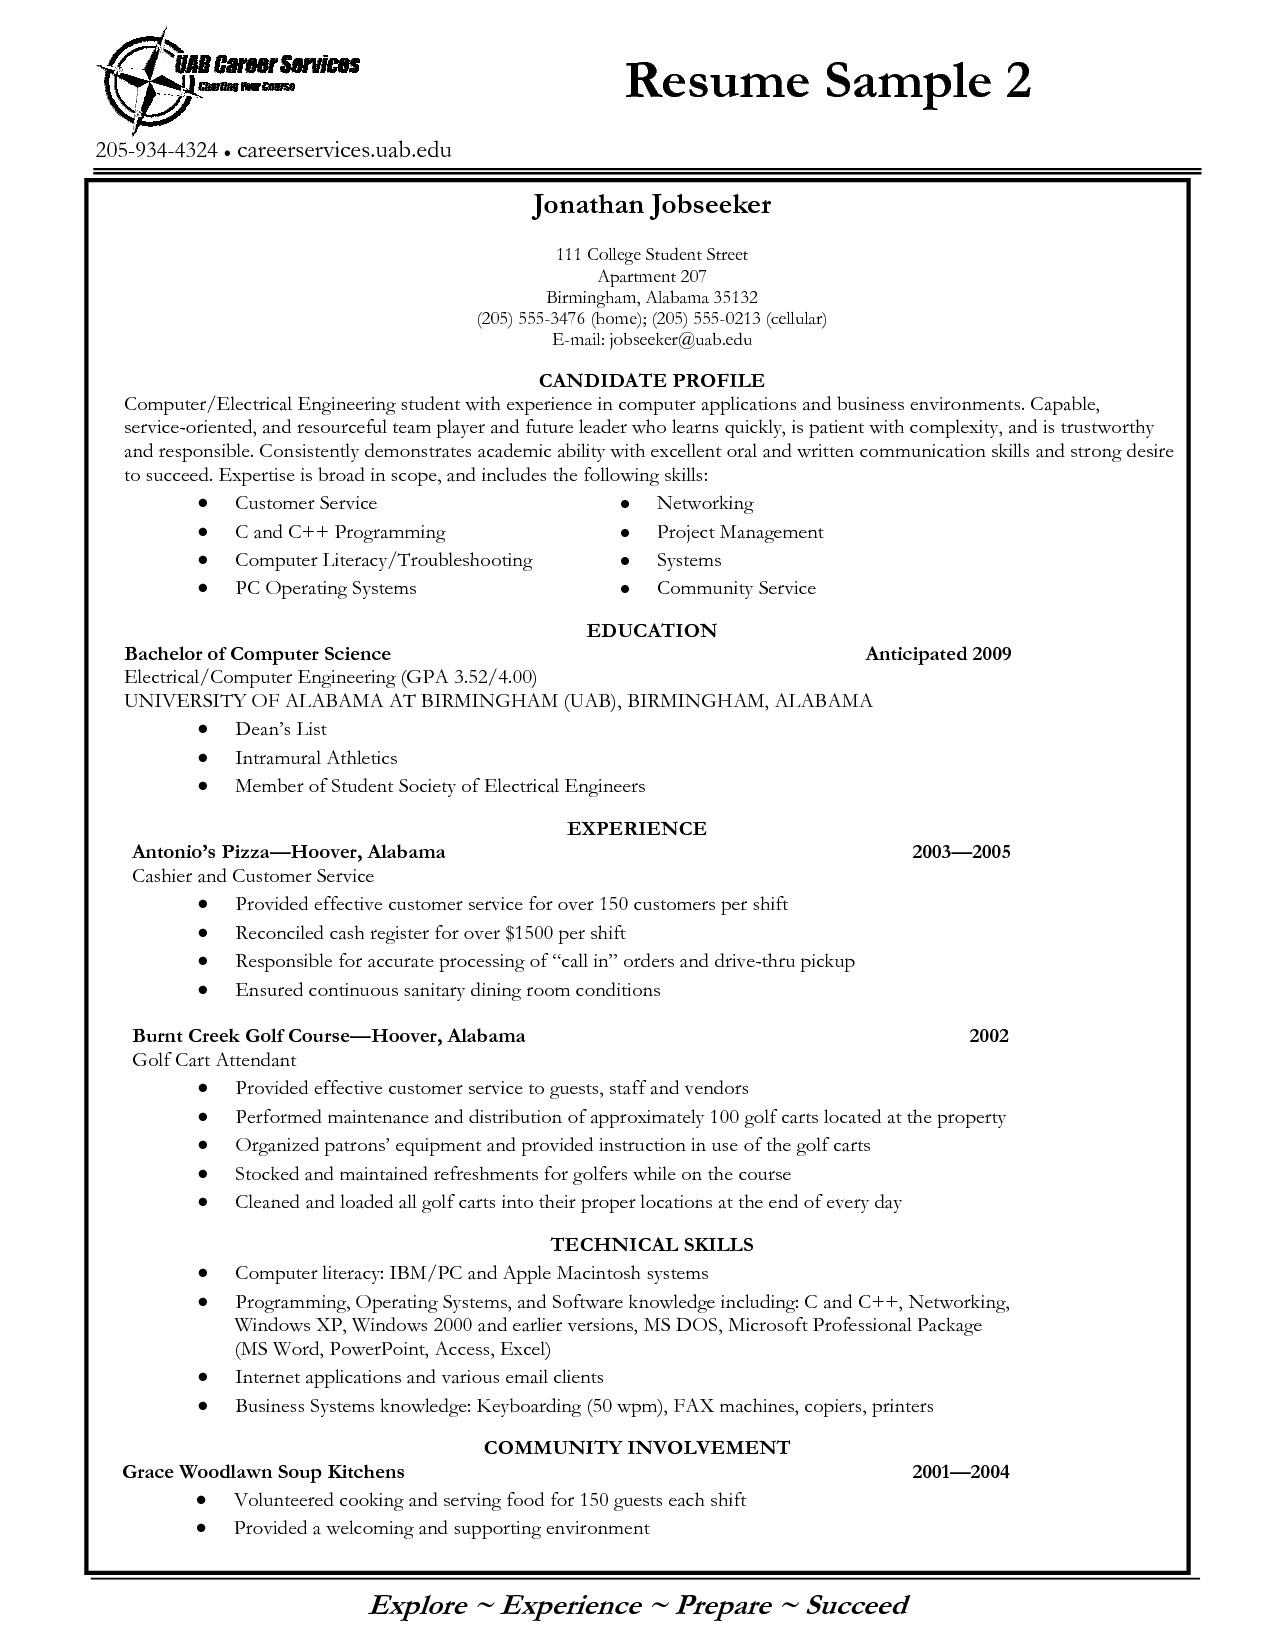 Tags College Graduate Resume No Experience College Graduate Resume ... Student  Resume TemplateSample ...  Resume Examples For College Students With Little Experience